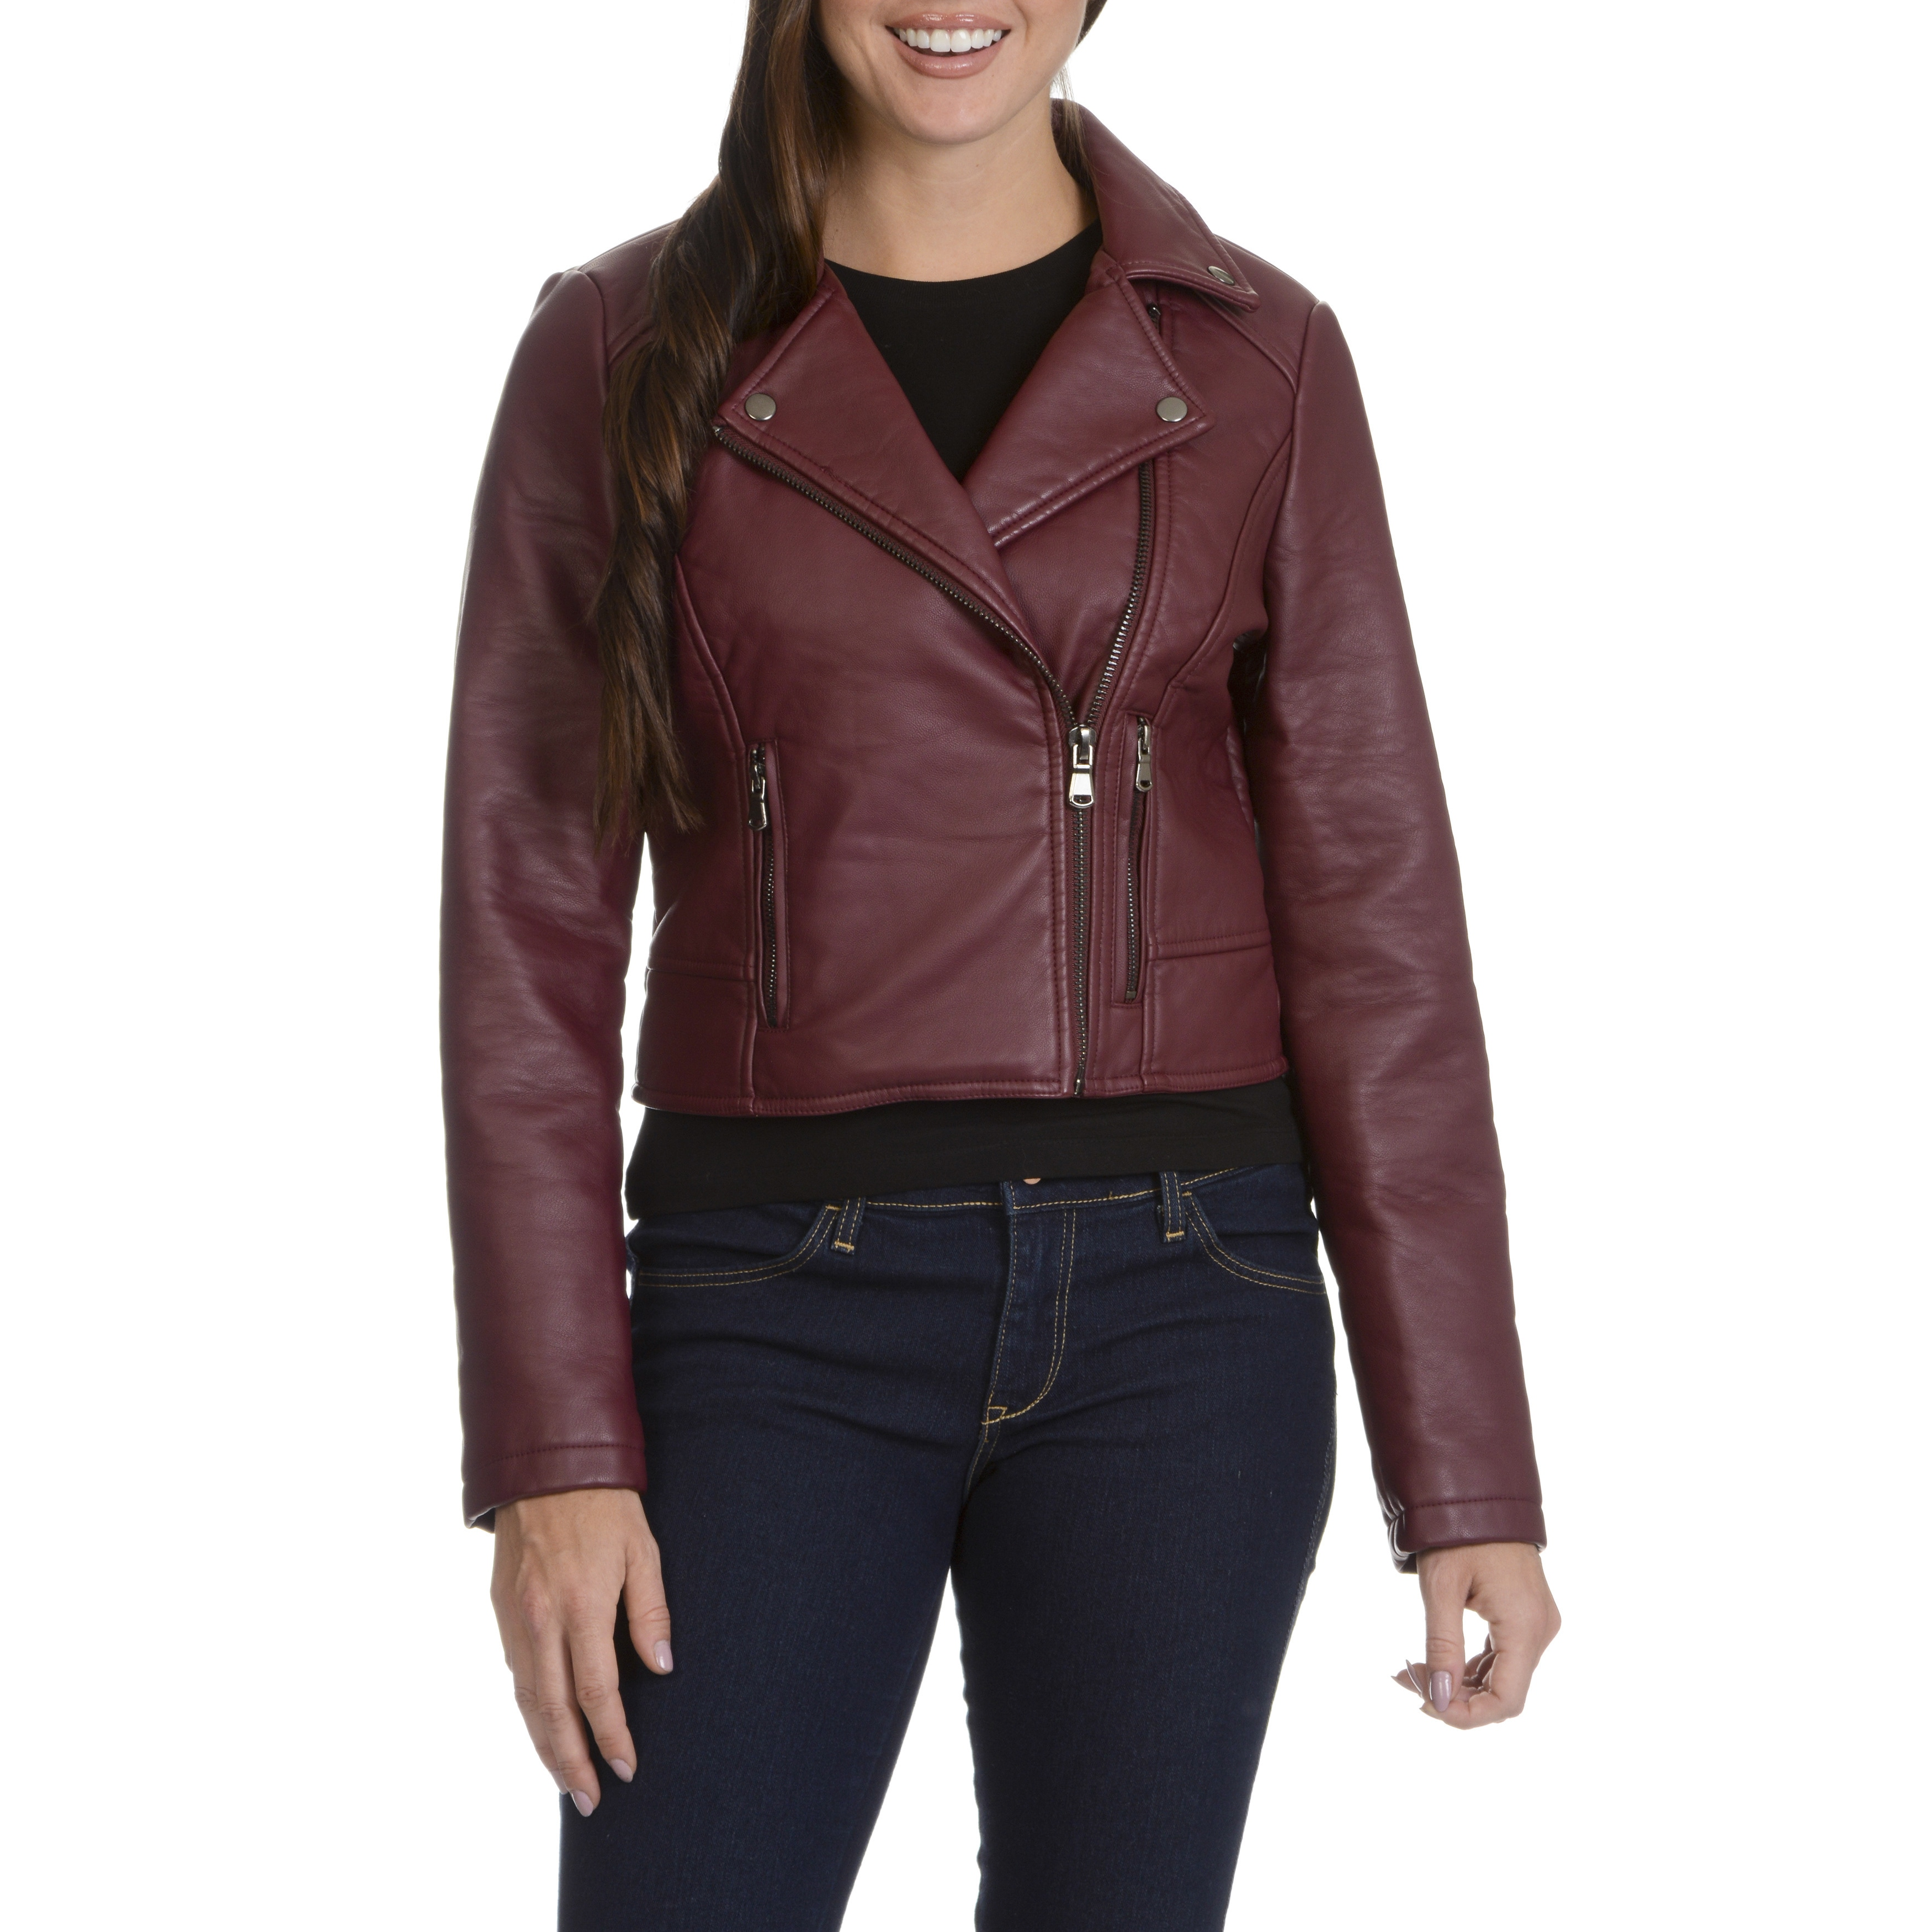 Ashley Women's Black/Red Faux Leather Motorcycle Jacket (...